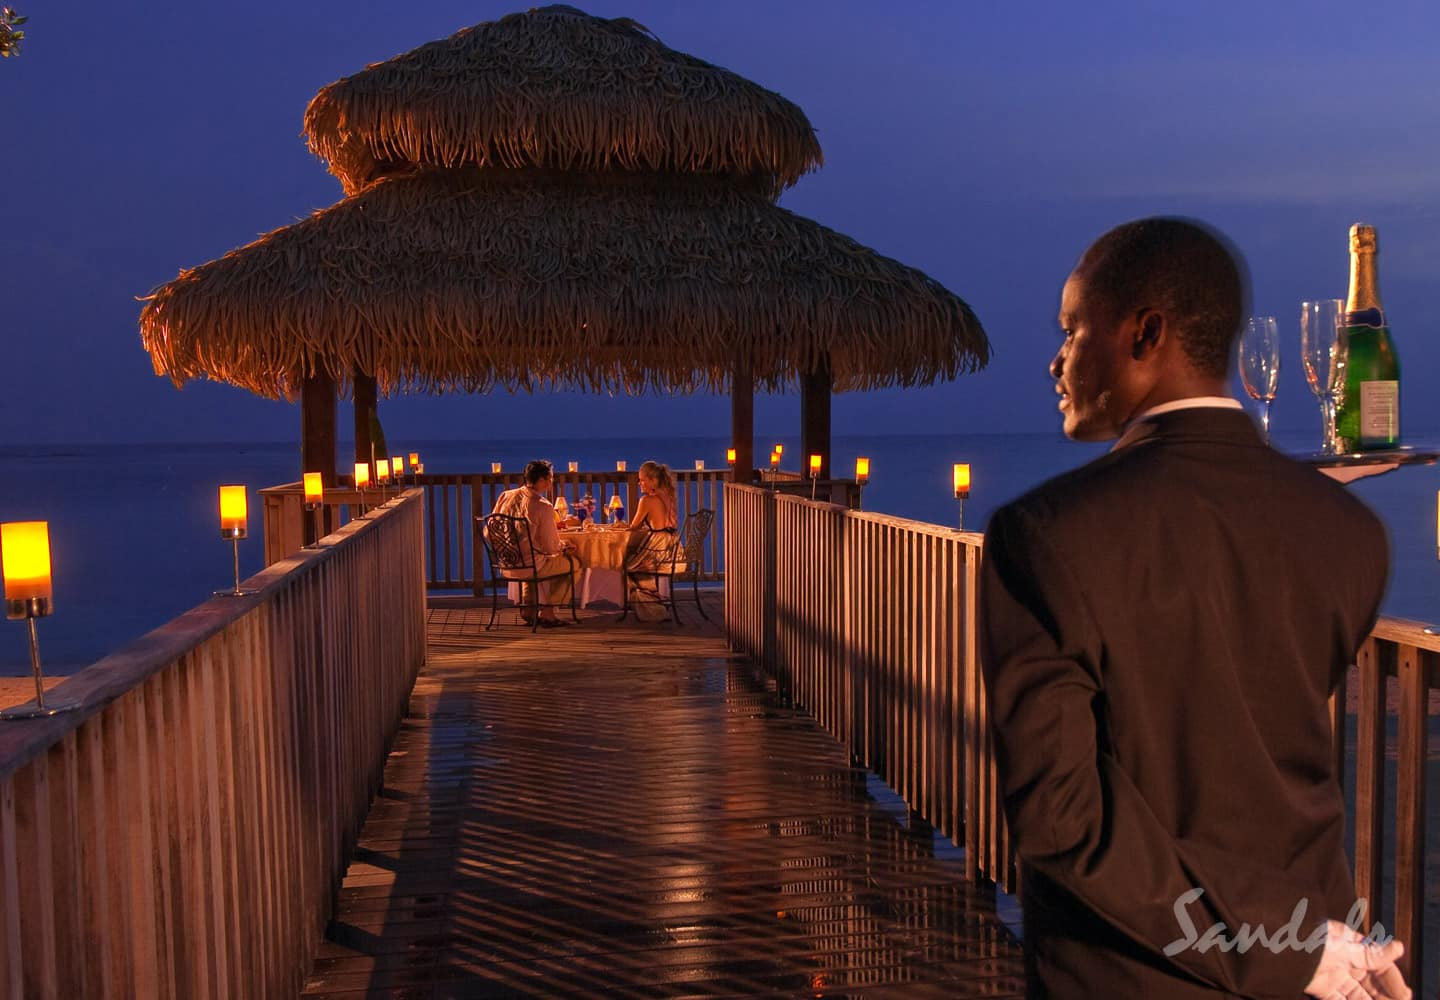 couple on their private candlelight dinner at the end of pier, butler waiting with meals and drinks at the beginning of the pier at Sandals South Coast in Whitehouse, Jamaica, honeymoons and all inclusive vacations adults only can be booked with Southern Travel Agency Augusta, GA